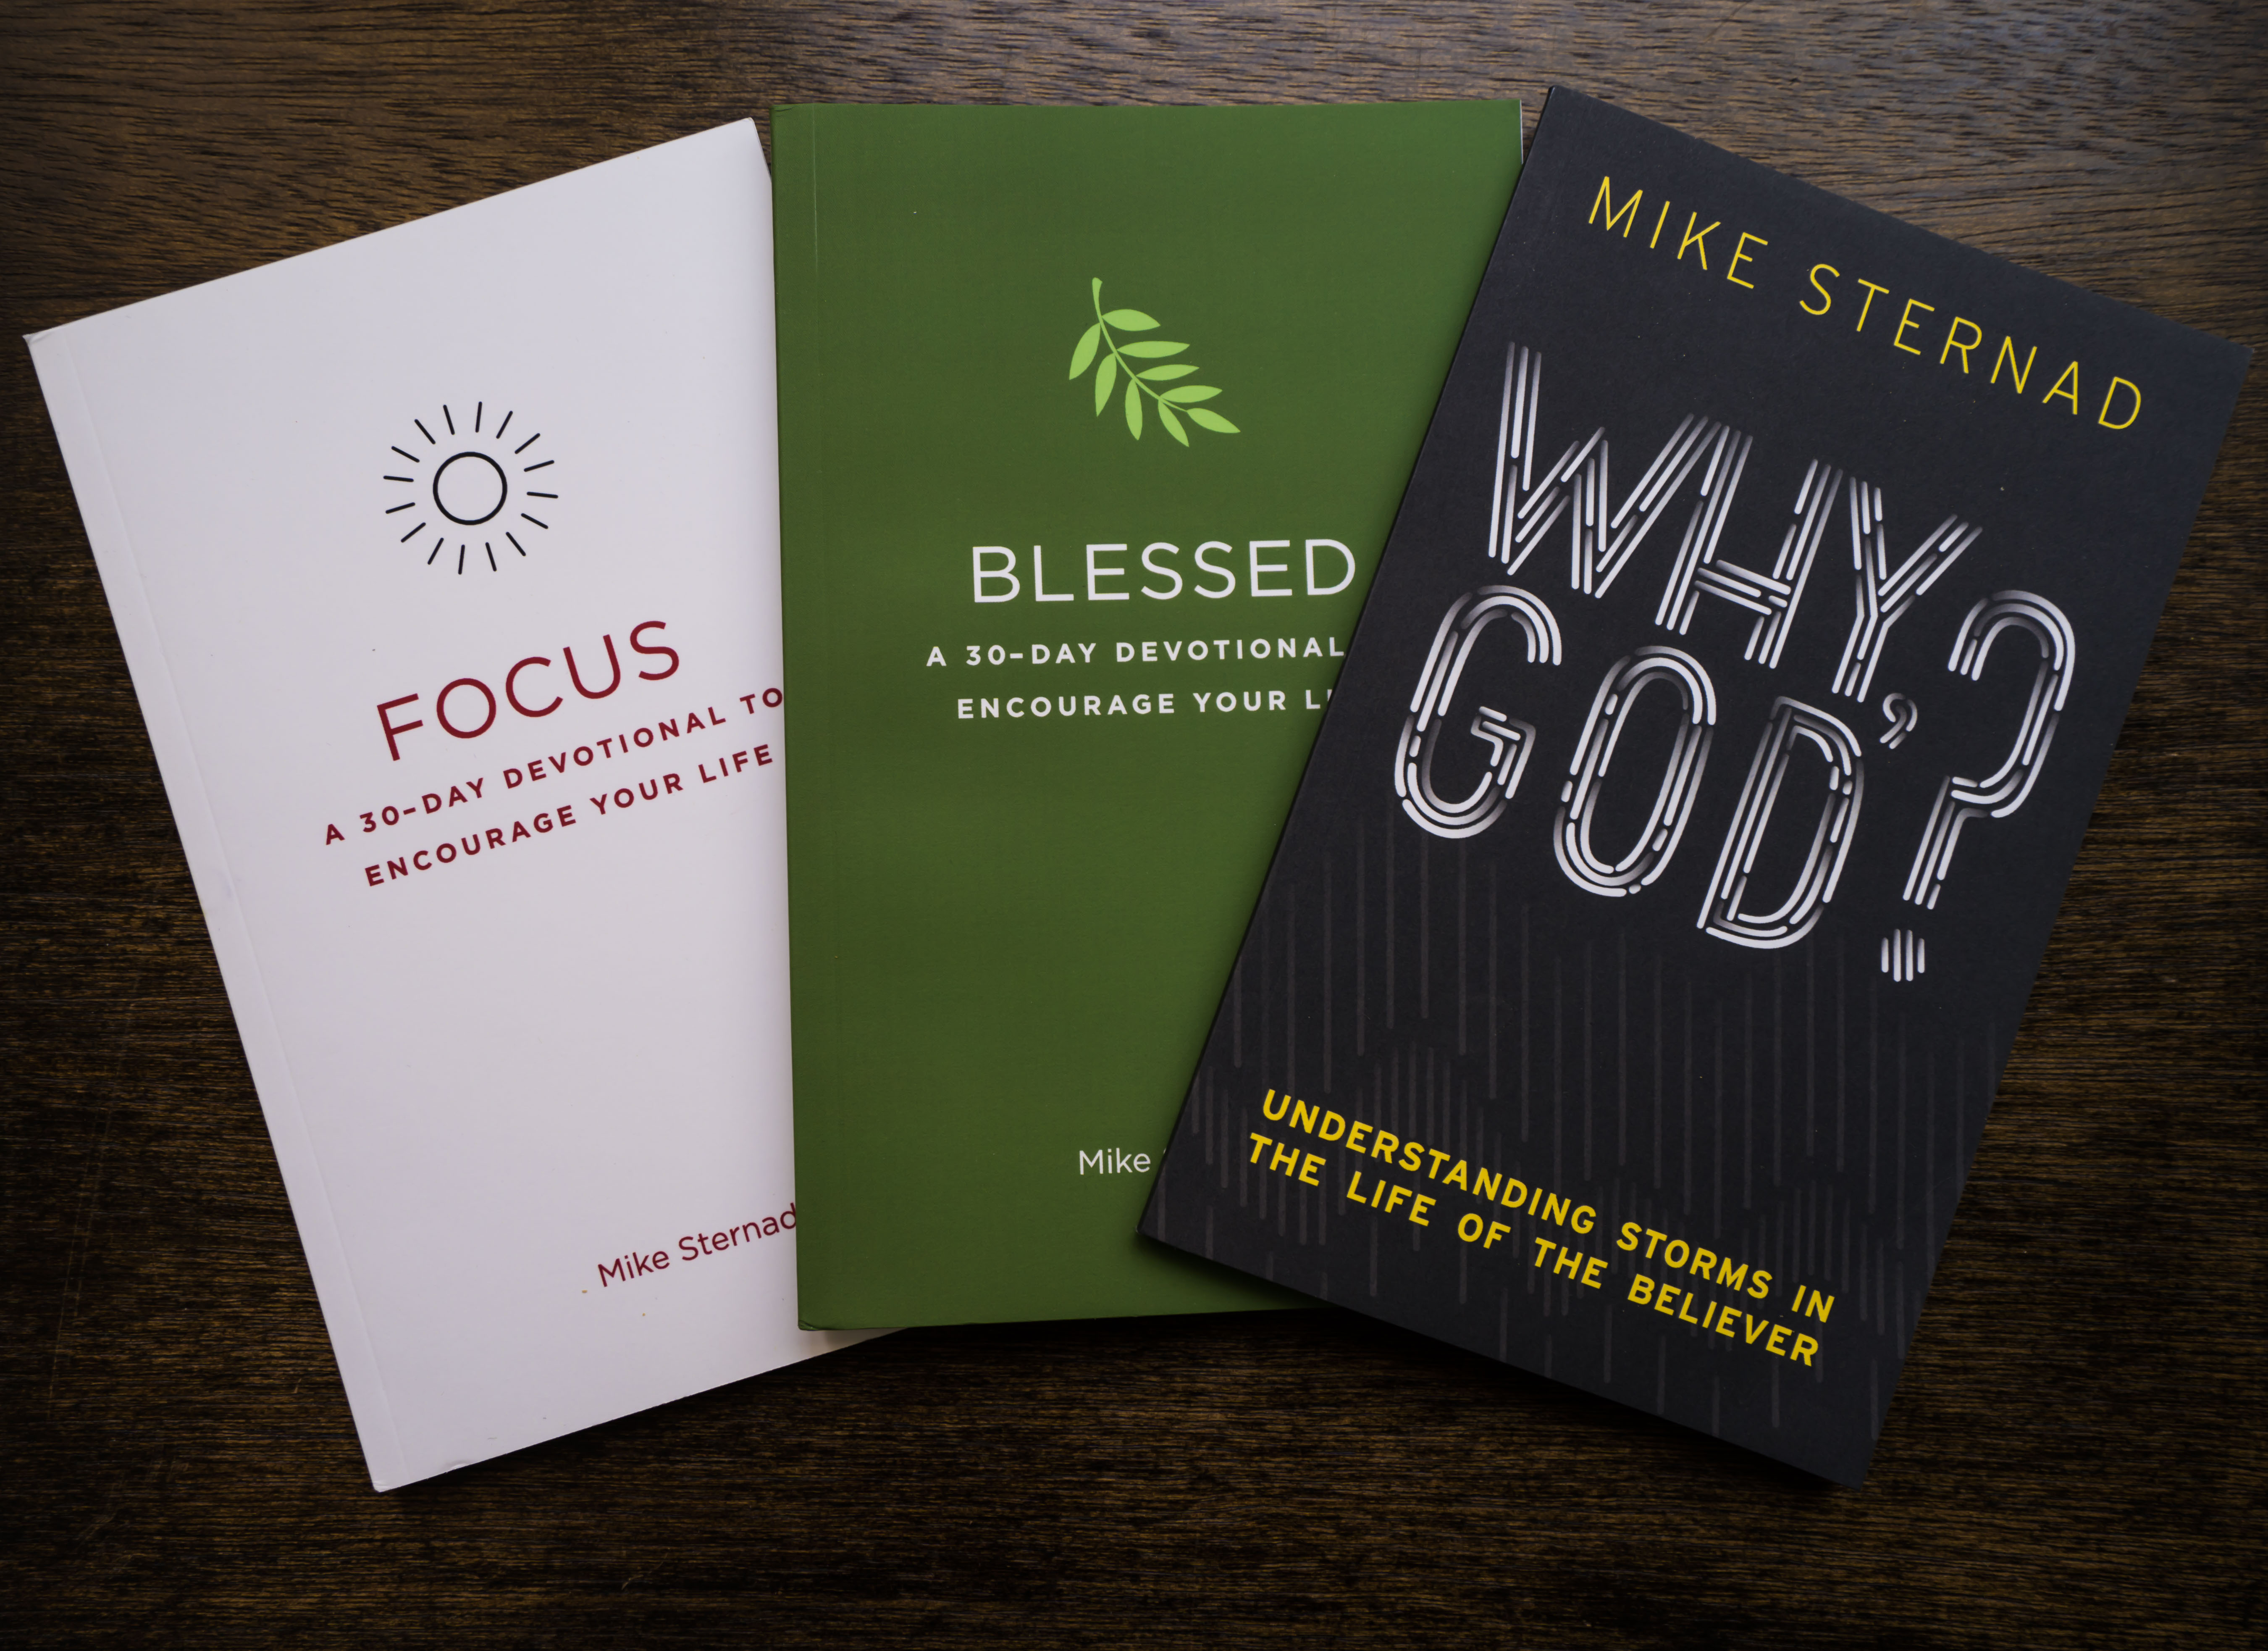 https://smile.amazon.com/Focus-30-Day-Devotional-Encourage-Your/dp/1734345403/ref=sr_1_6?dchild=1&keywords=focus+mike+sternad&qid=1587677707&sr=8-6